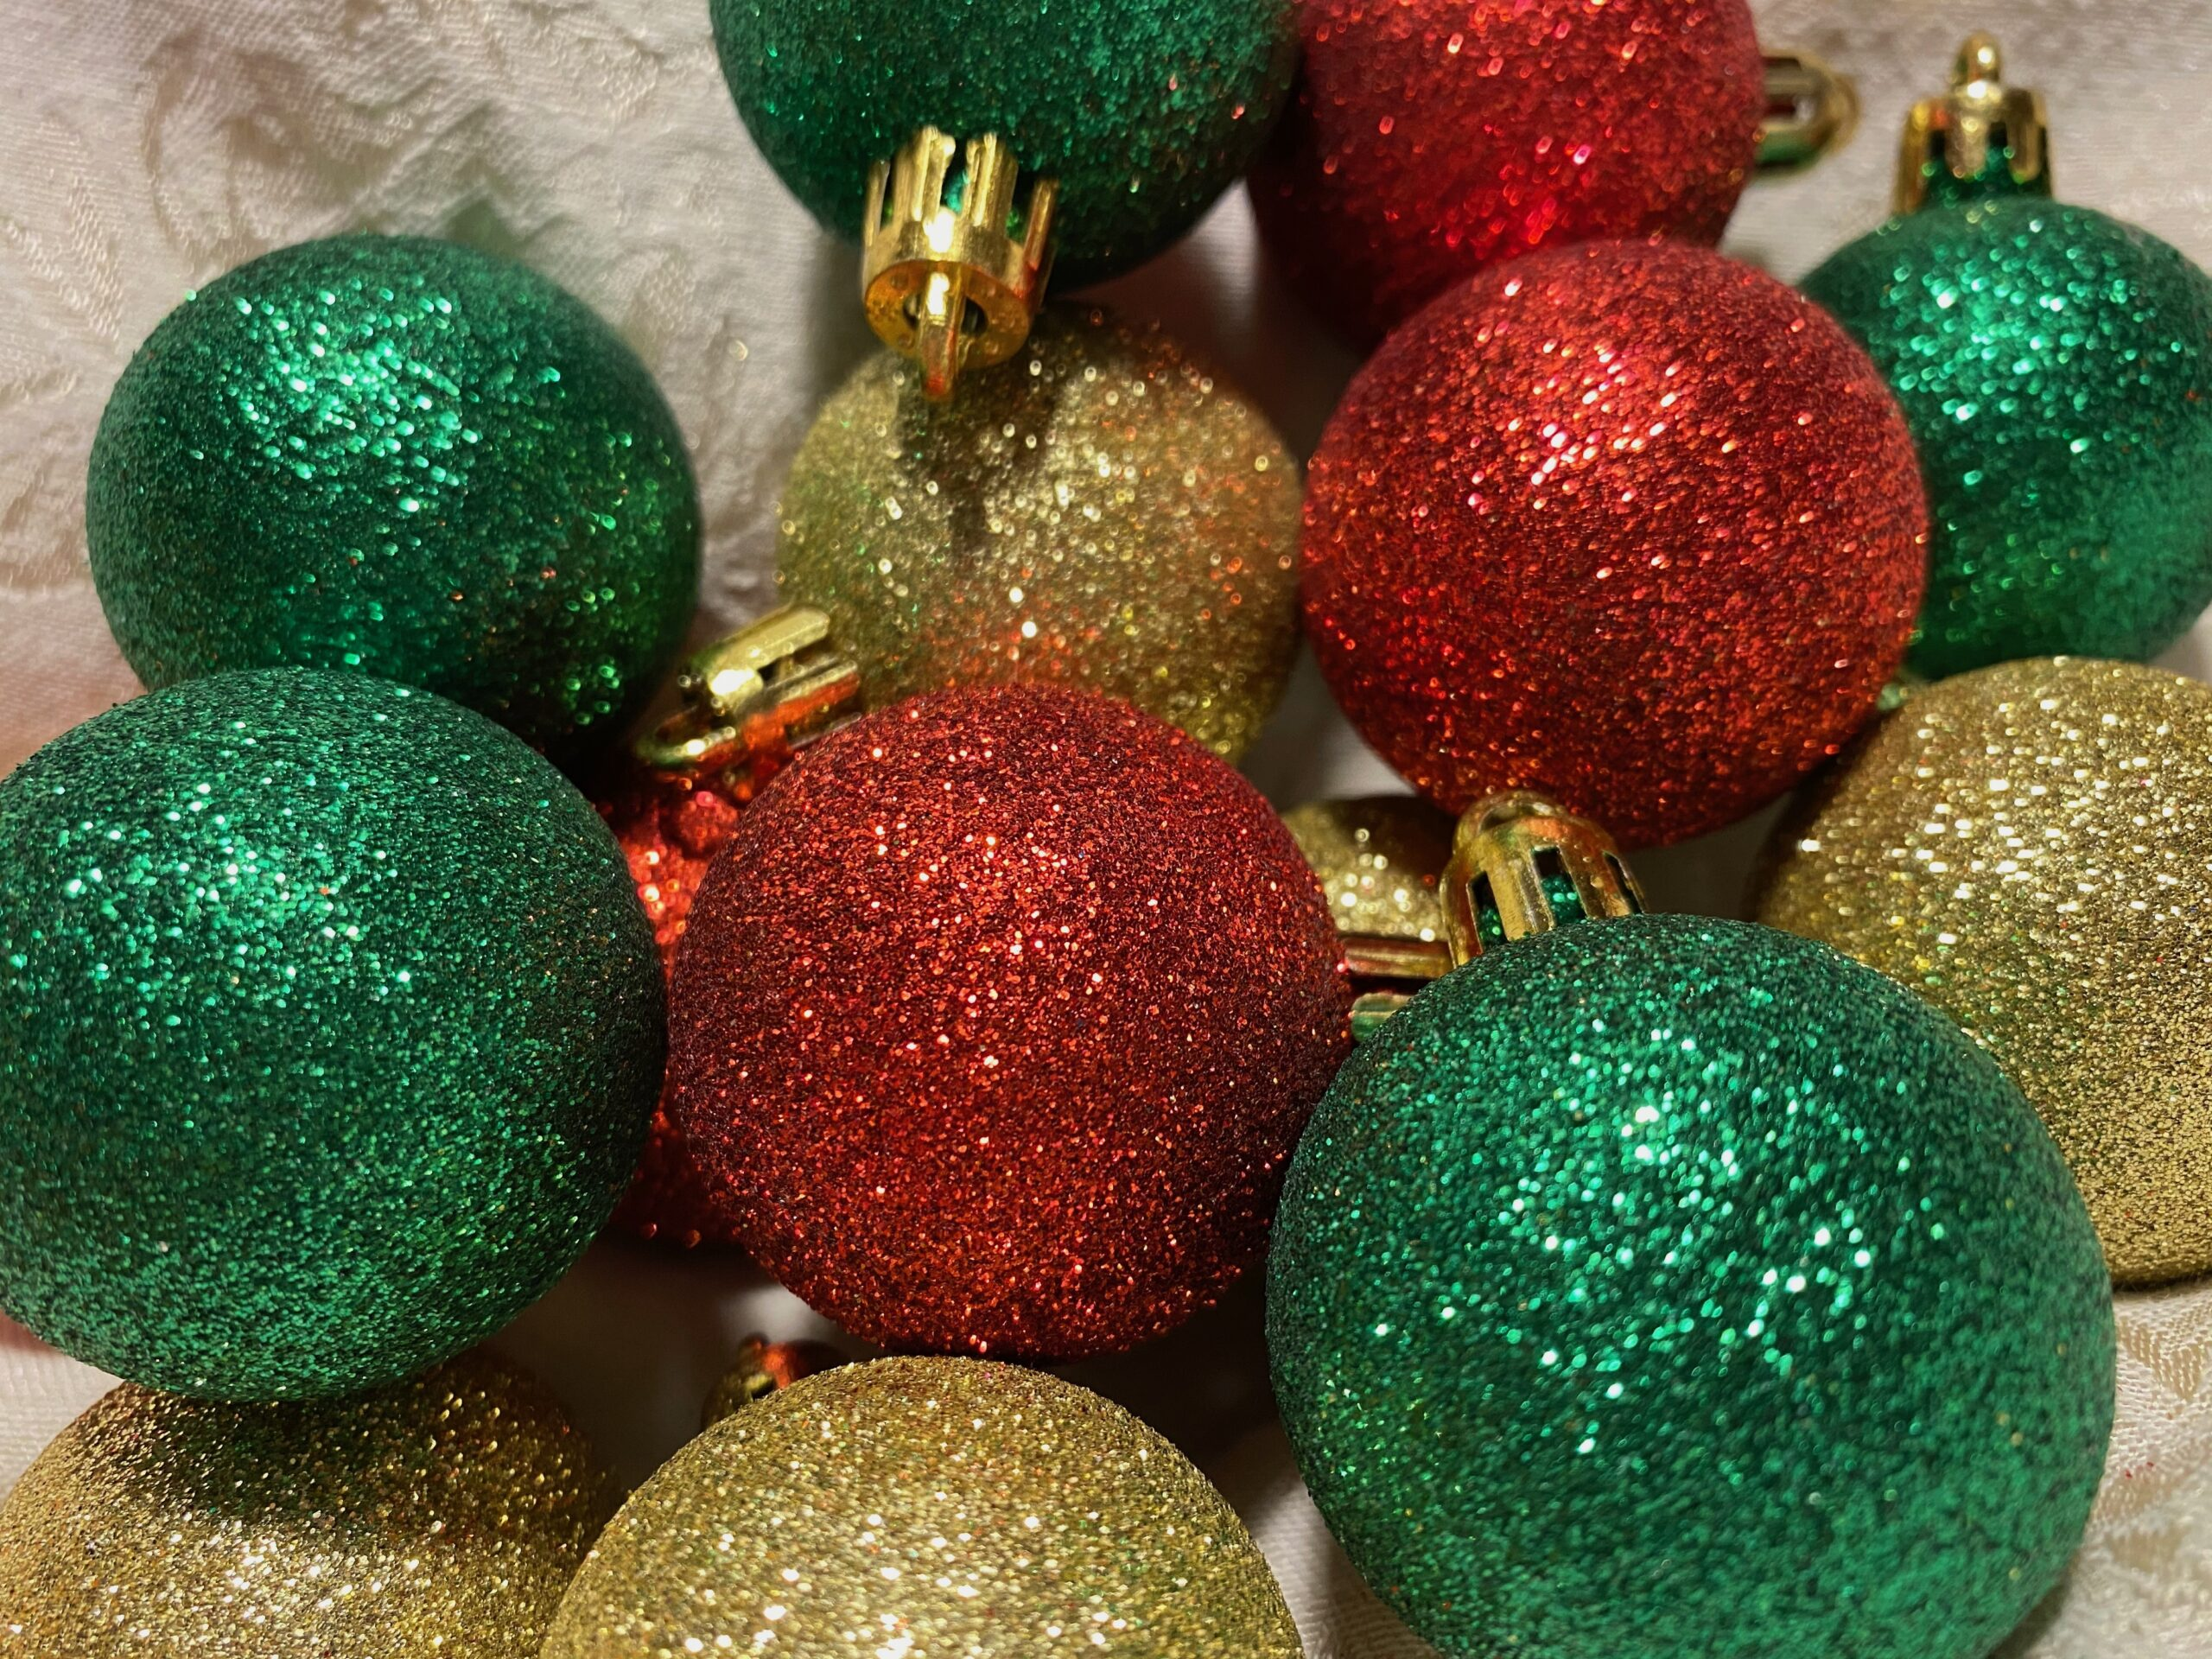 Dollar Tree Christmas Decorations 2020 2019 Dollar Tree Store Christmas ornaments (in a tube!): 133,300